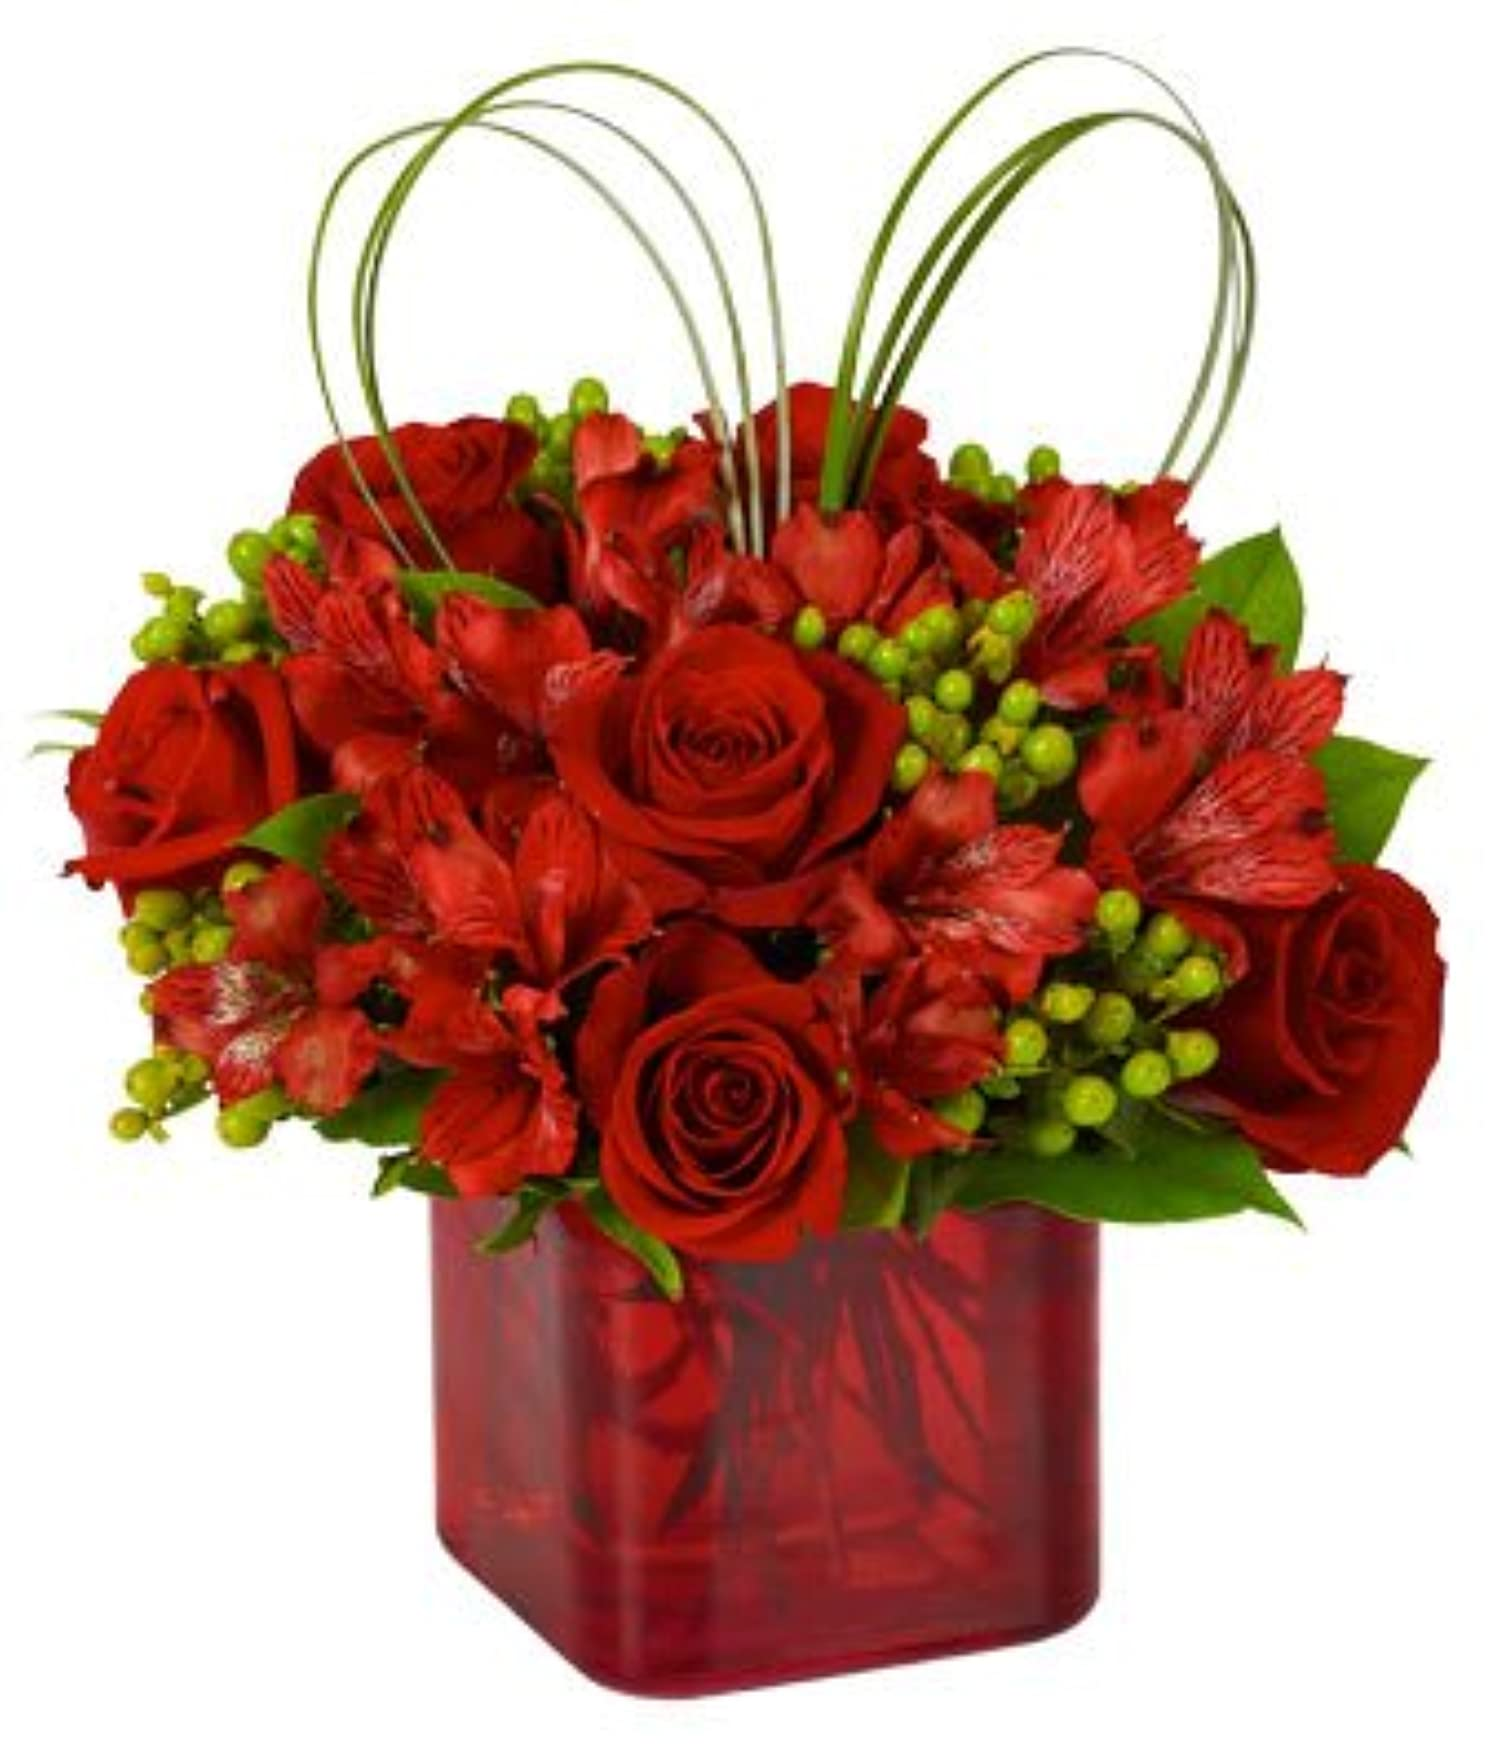 Couple Flowers Red Roses Hub Eshopclub Same Day Flower Delivery line